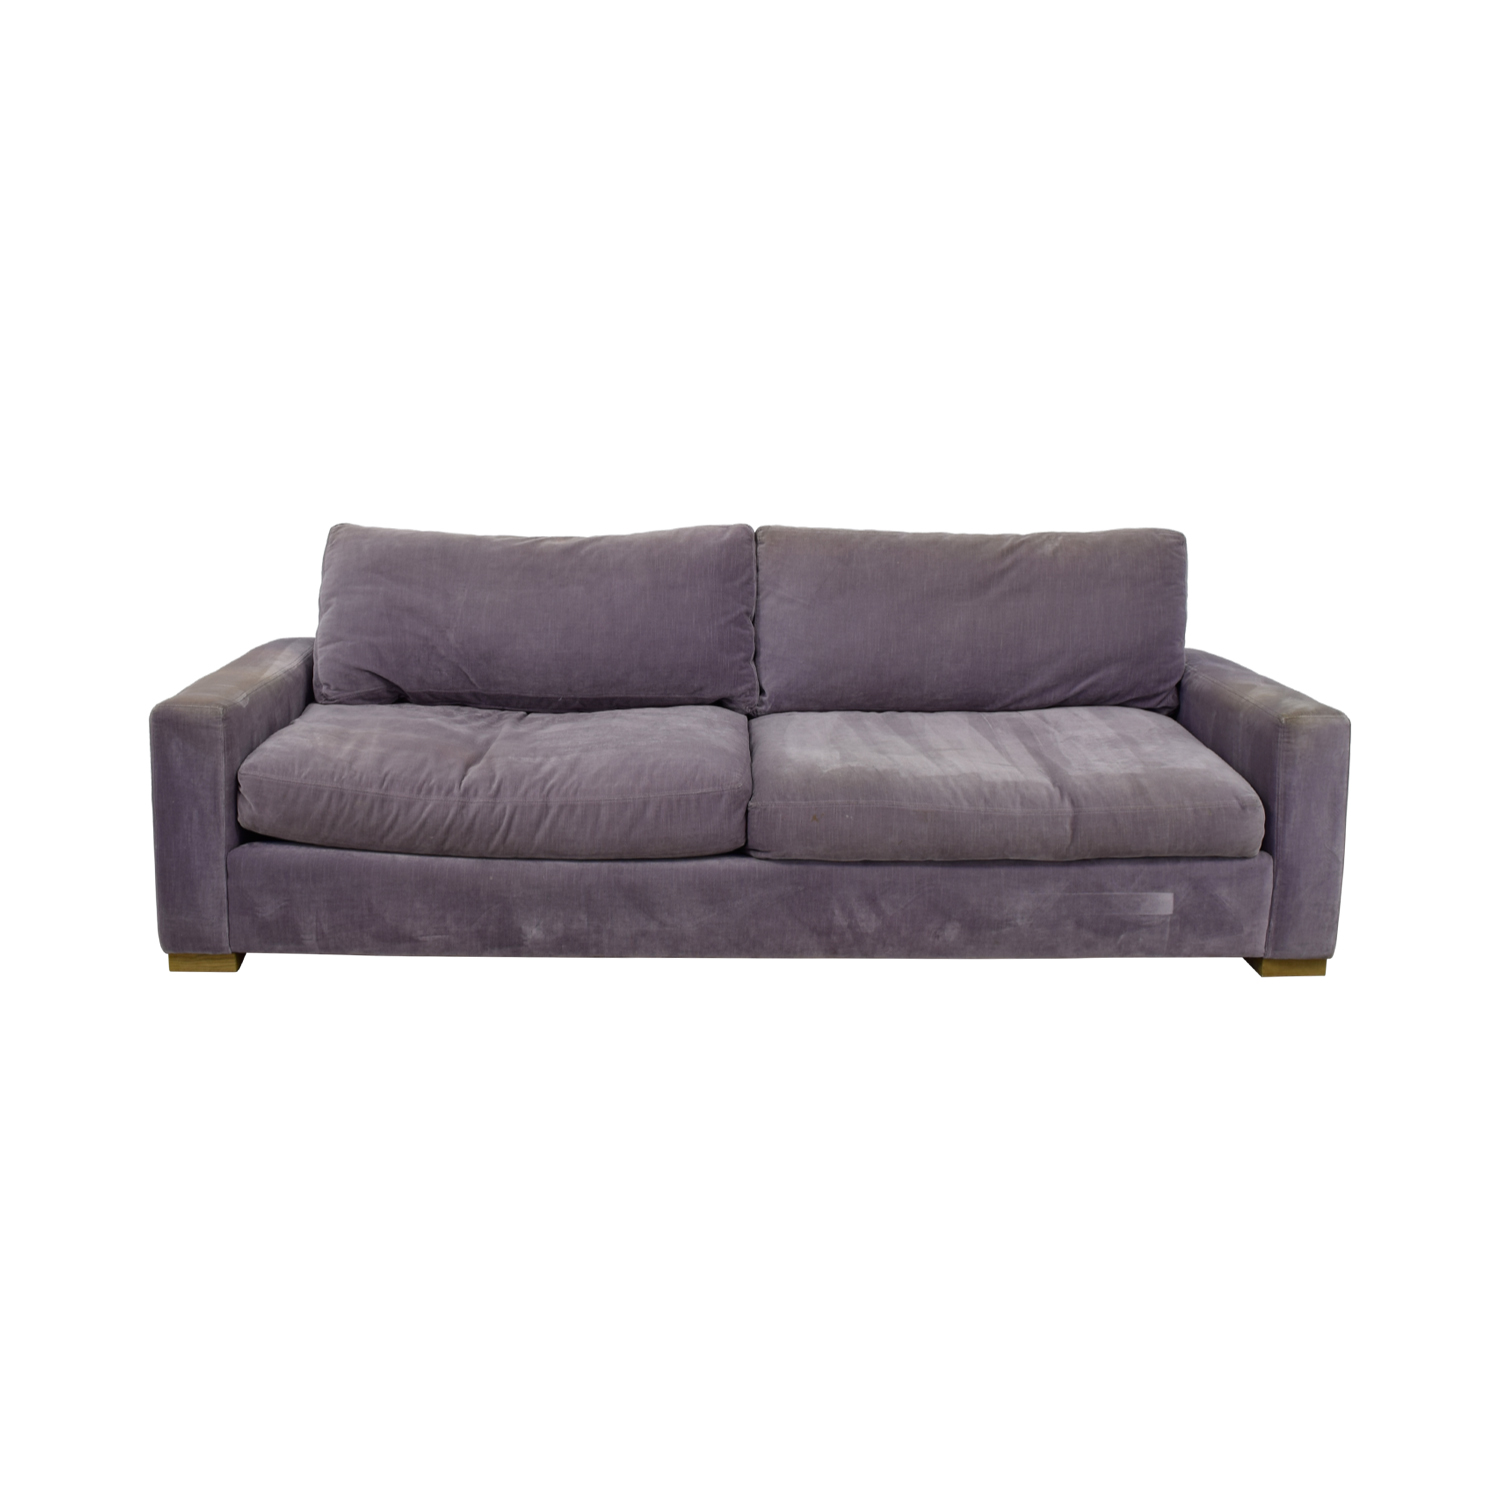 Restoration Hardware Restoration Hardware Maxwell Purple Down Filled Sofa second hand